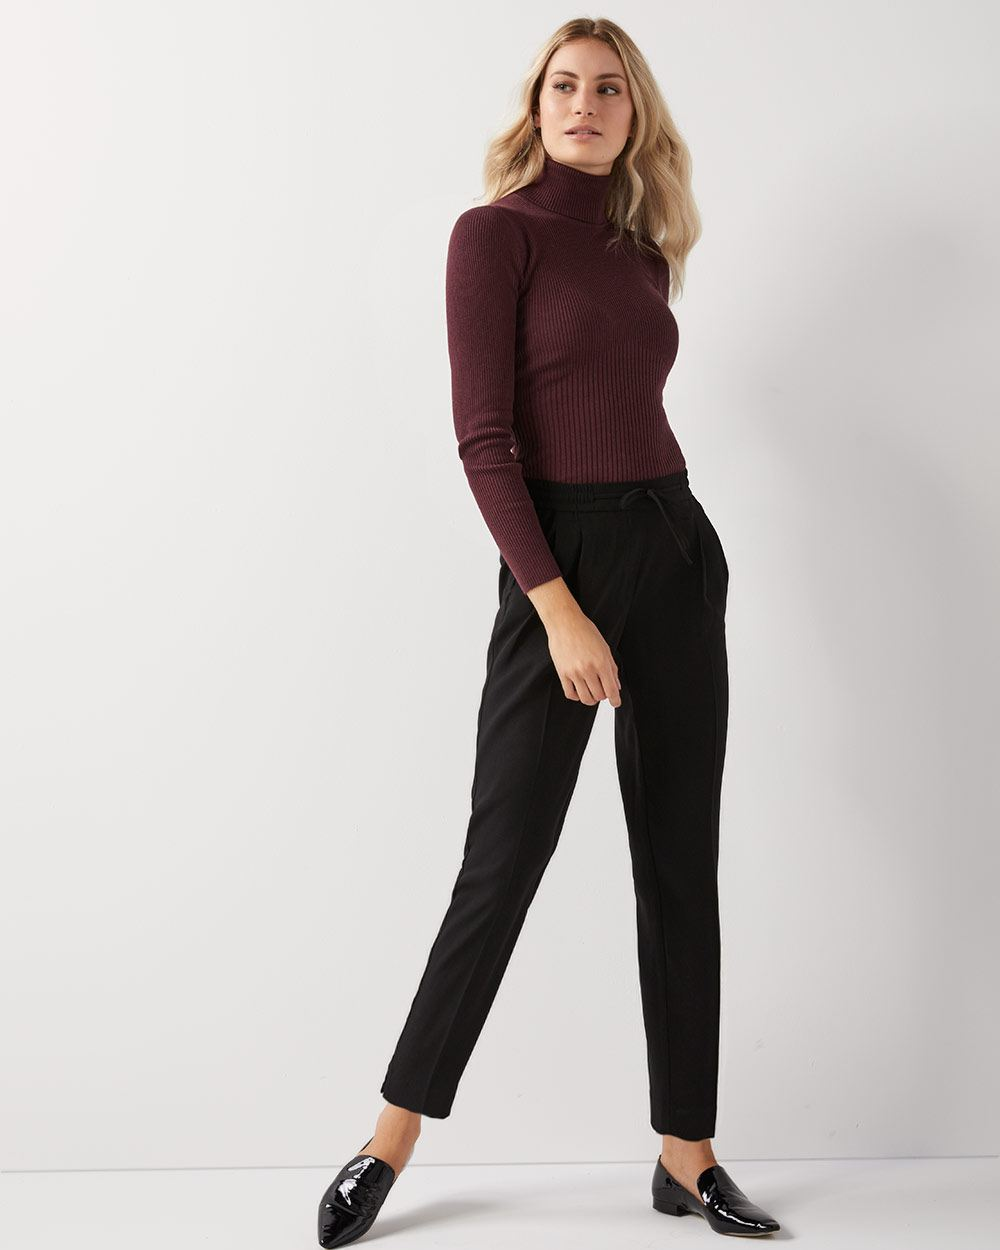 Solid pleated ankle length pant with drawstring